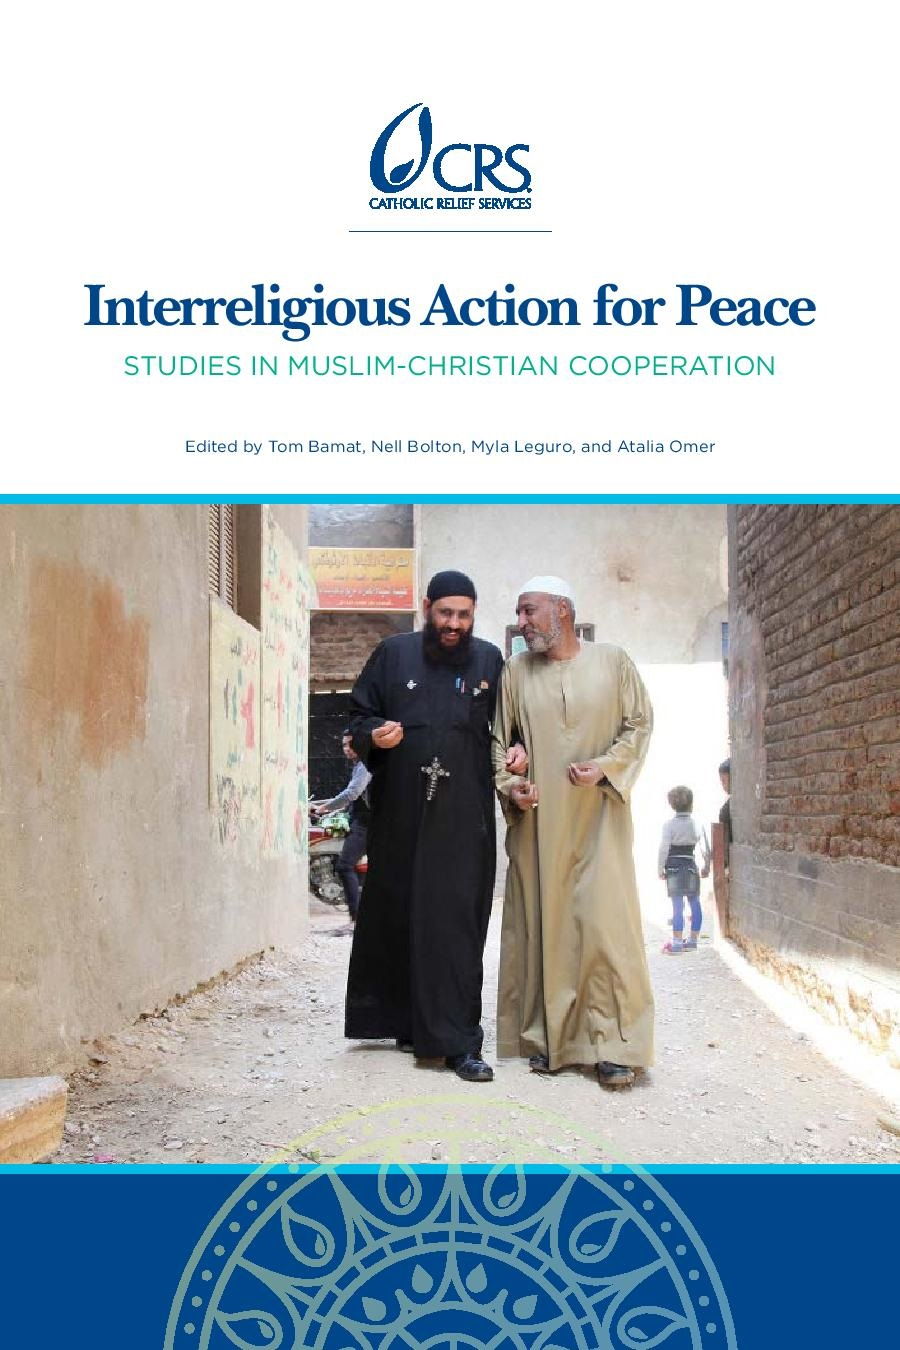 Interreligious Action for Peace